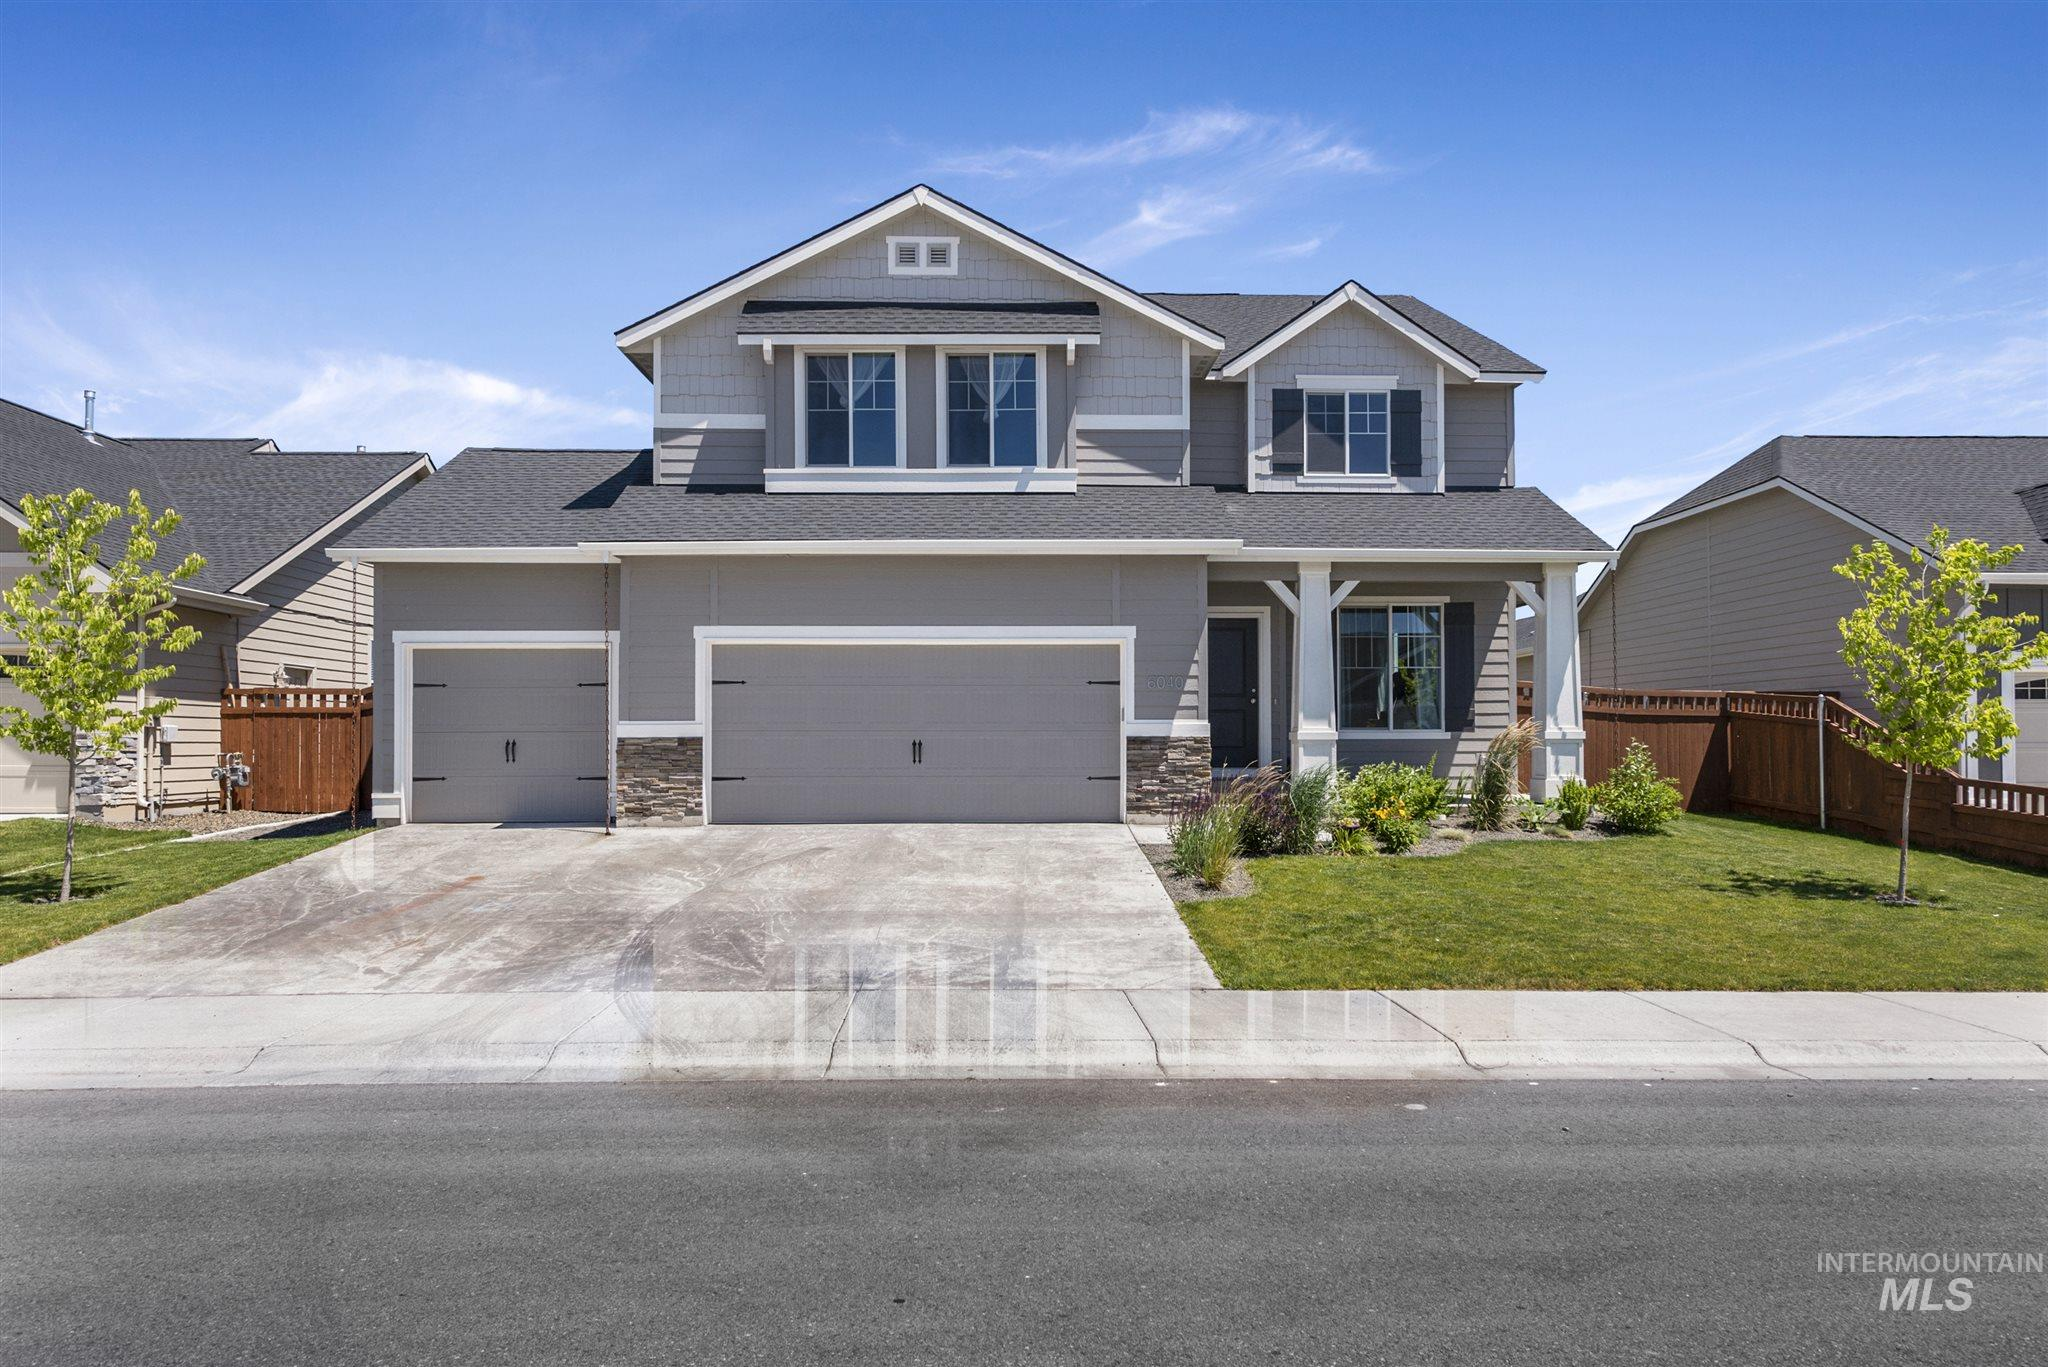 6040 S Chinook Way Property Photo - Boise, ID real estate listing